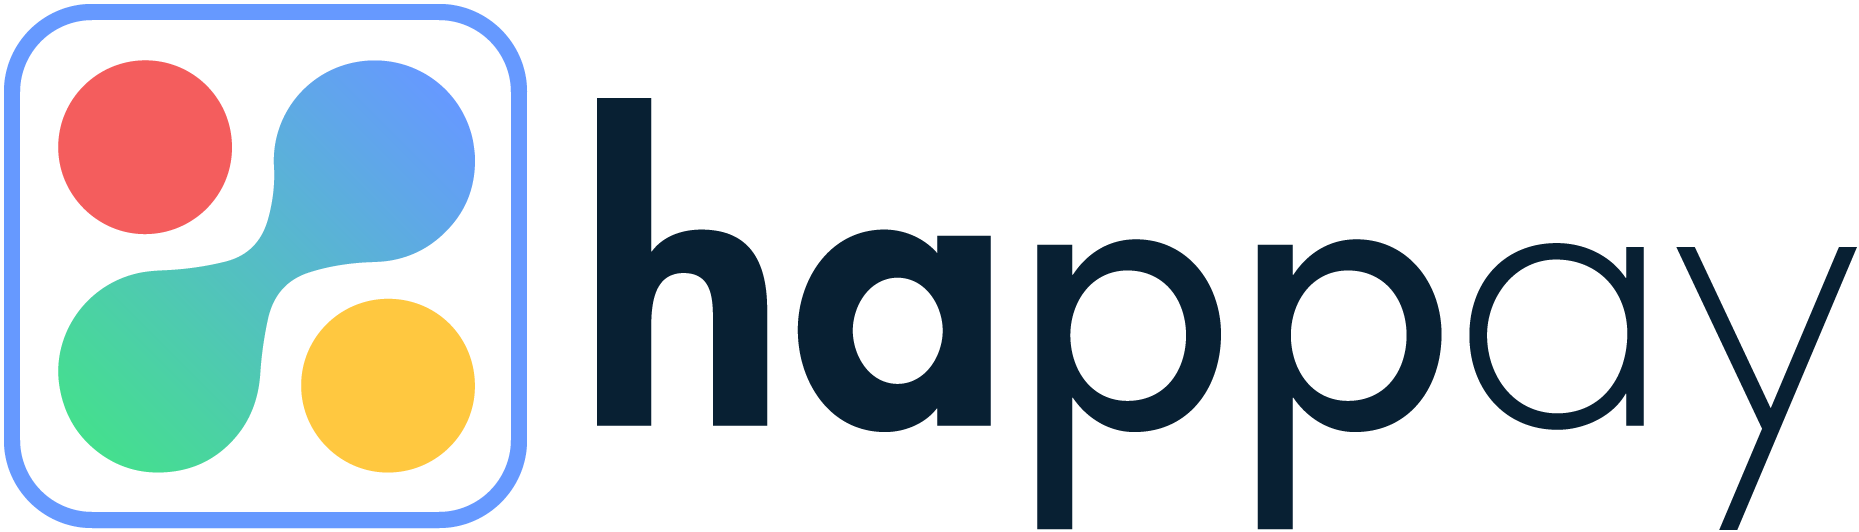 Happay Travel and Expense Management Software logo